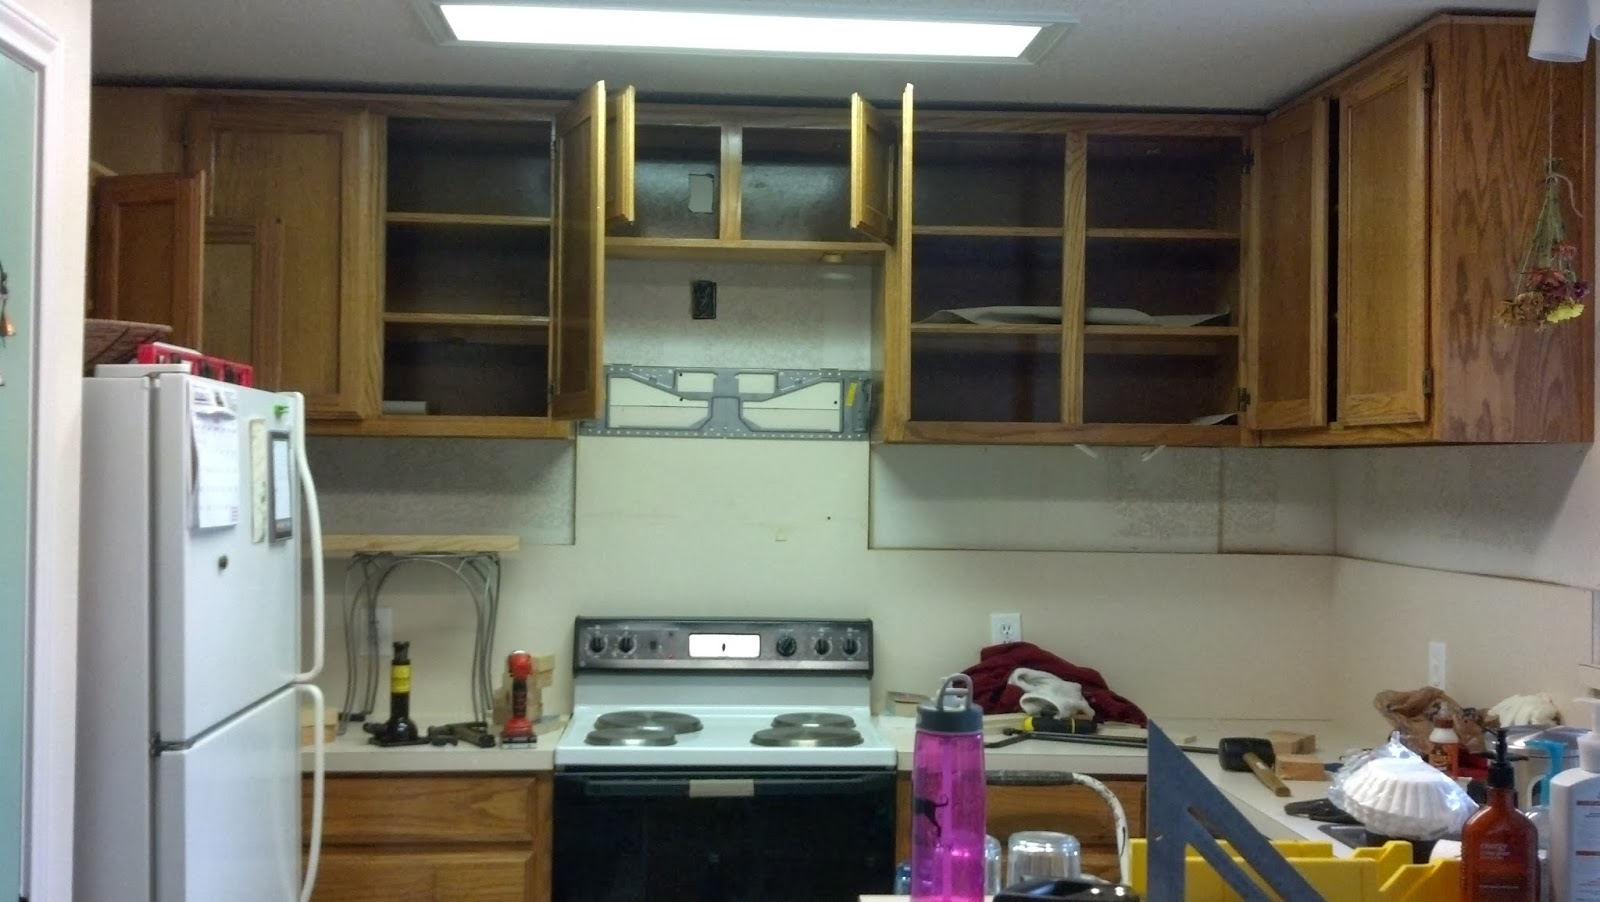 Under Cabinet Shelving Kitchen Best Ranges Fix Lovely How To Build Shelves Your Cabinets